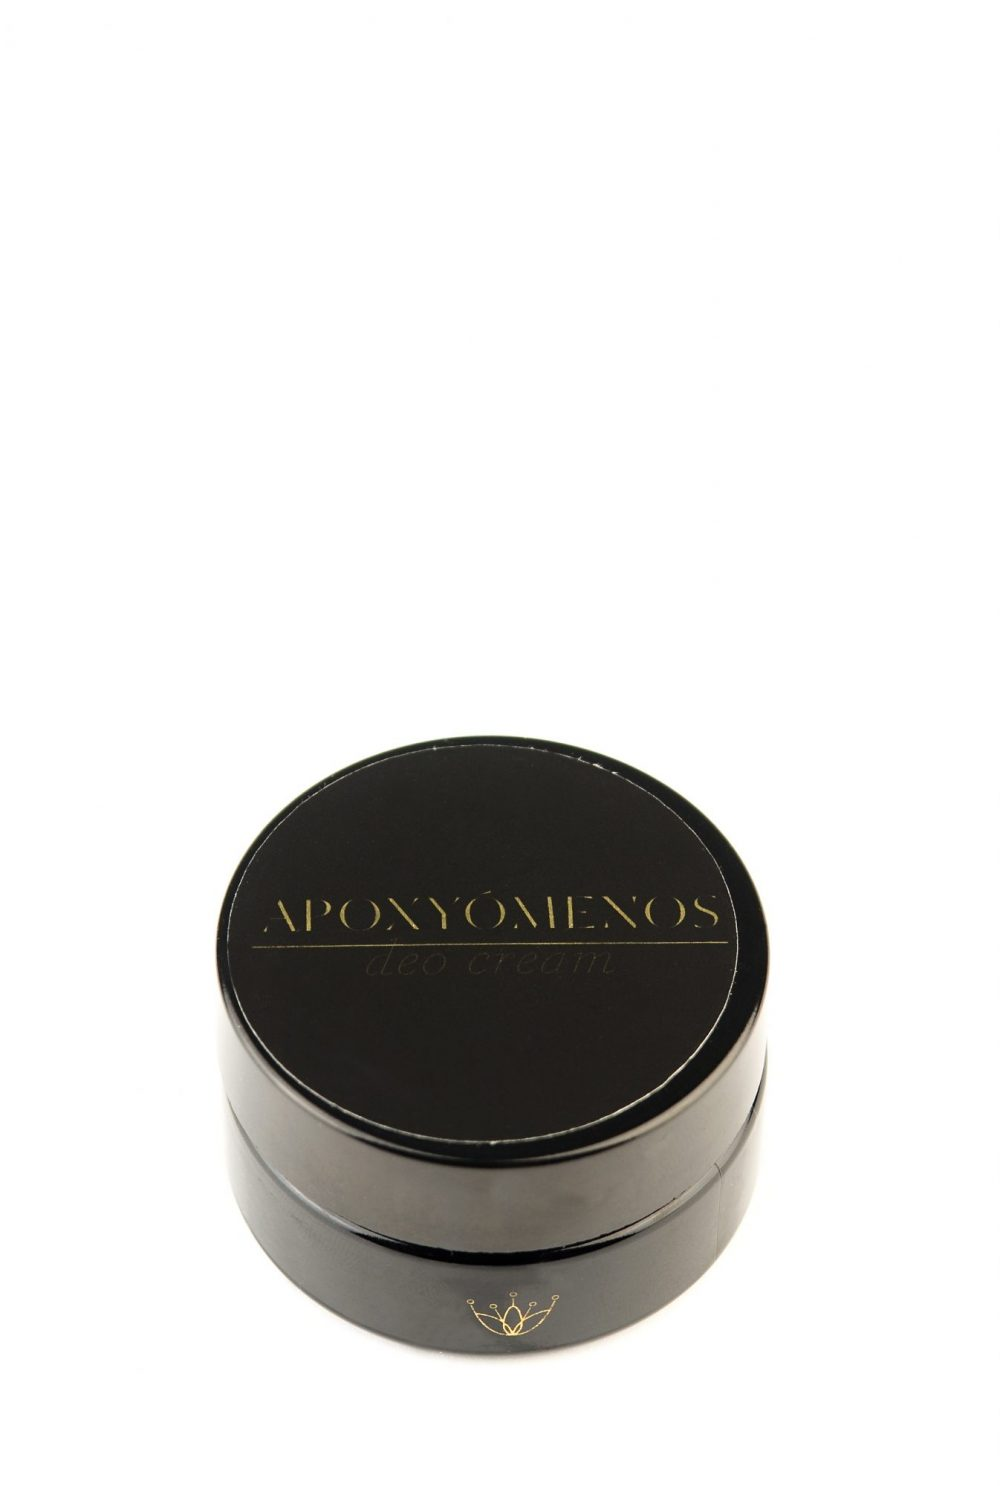 Deo cream Apoxyomenos 30 ml